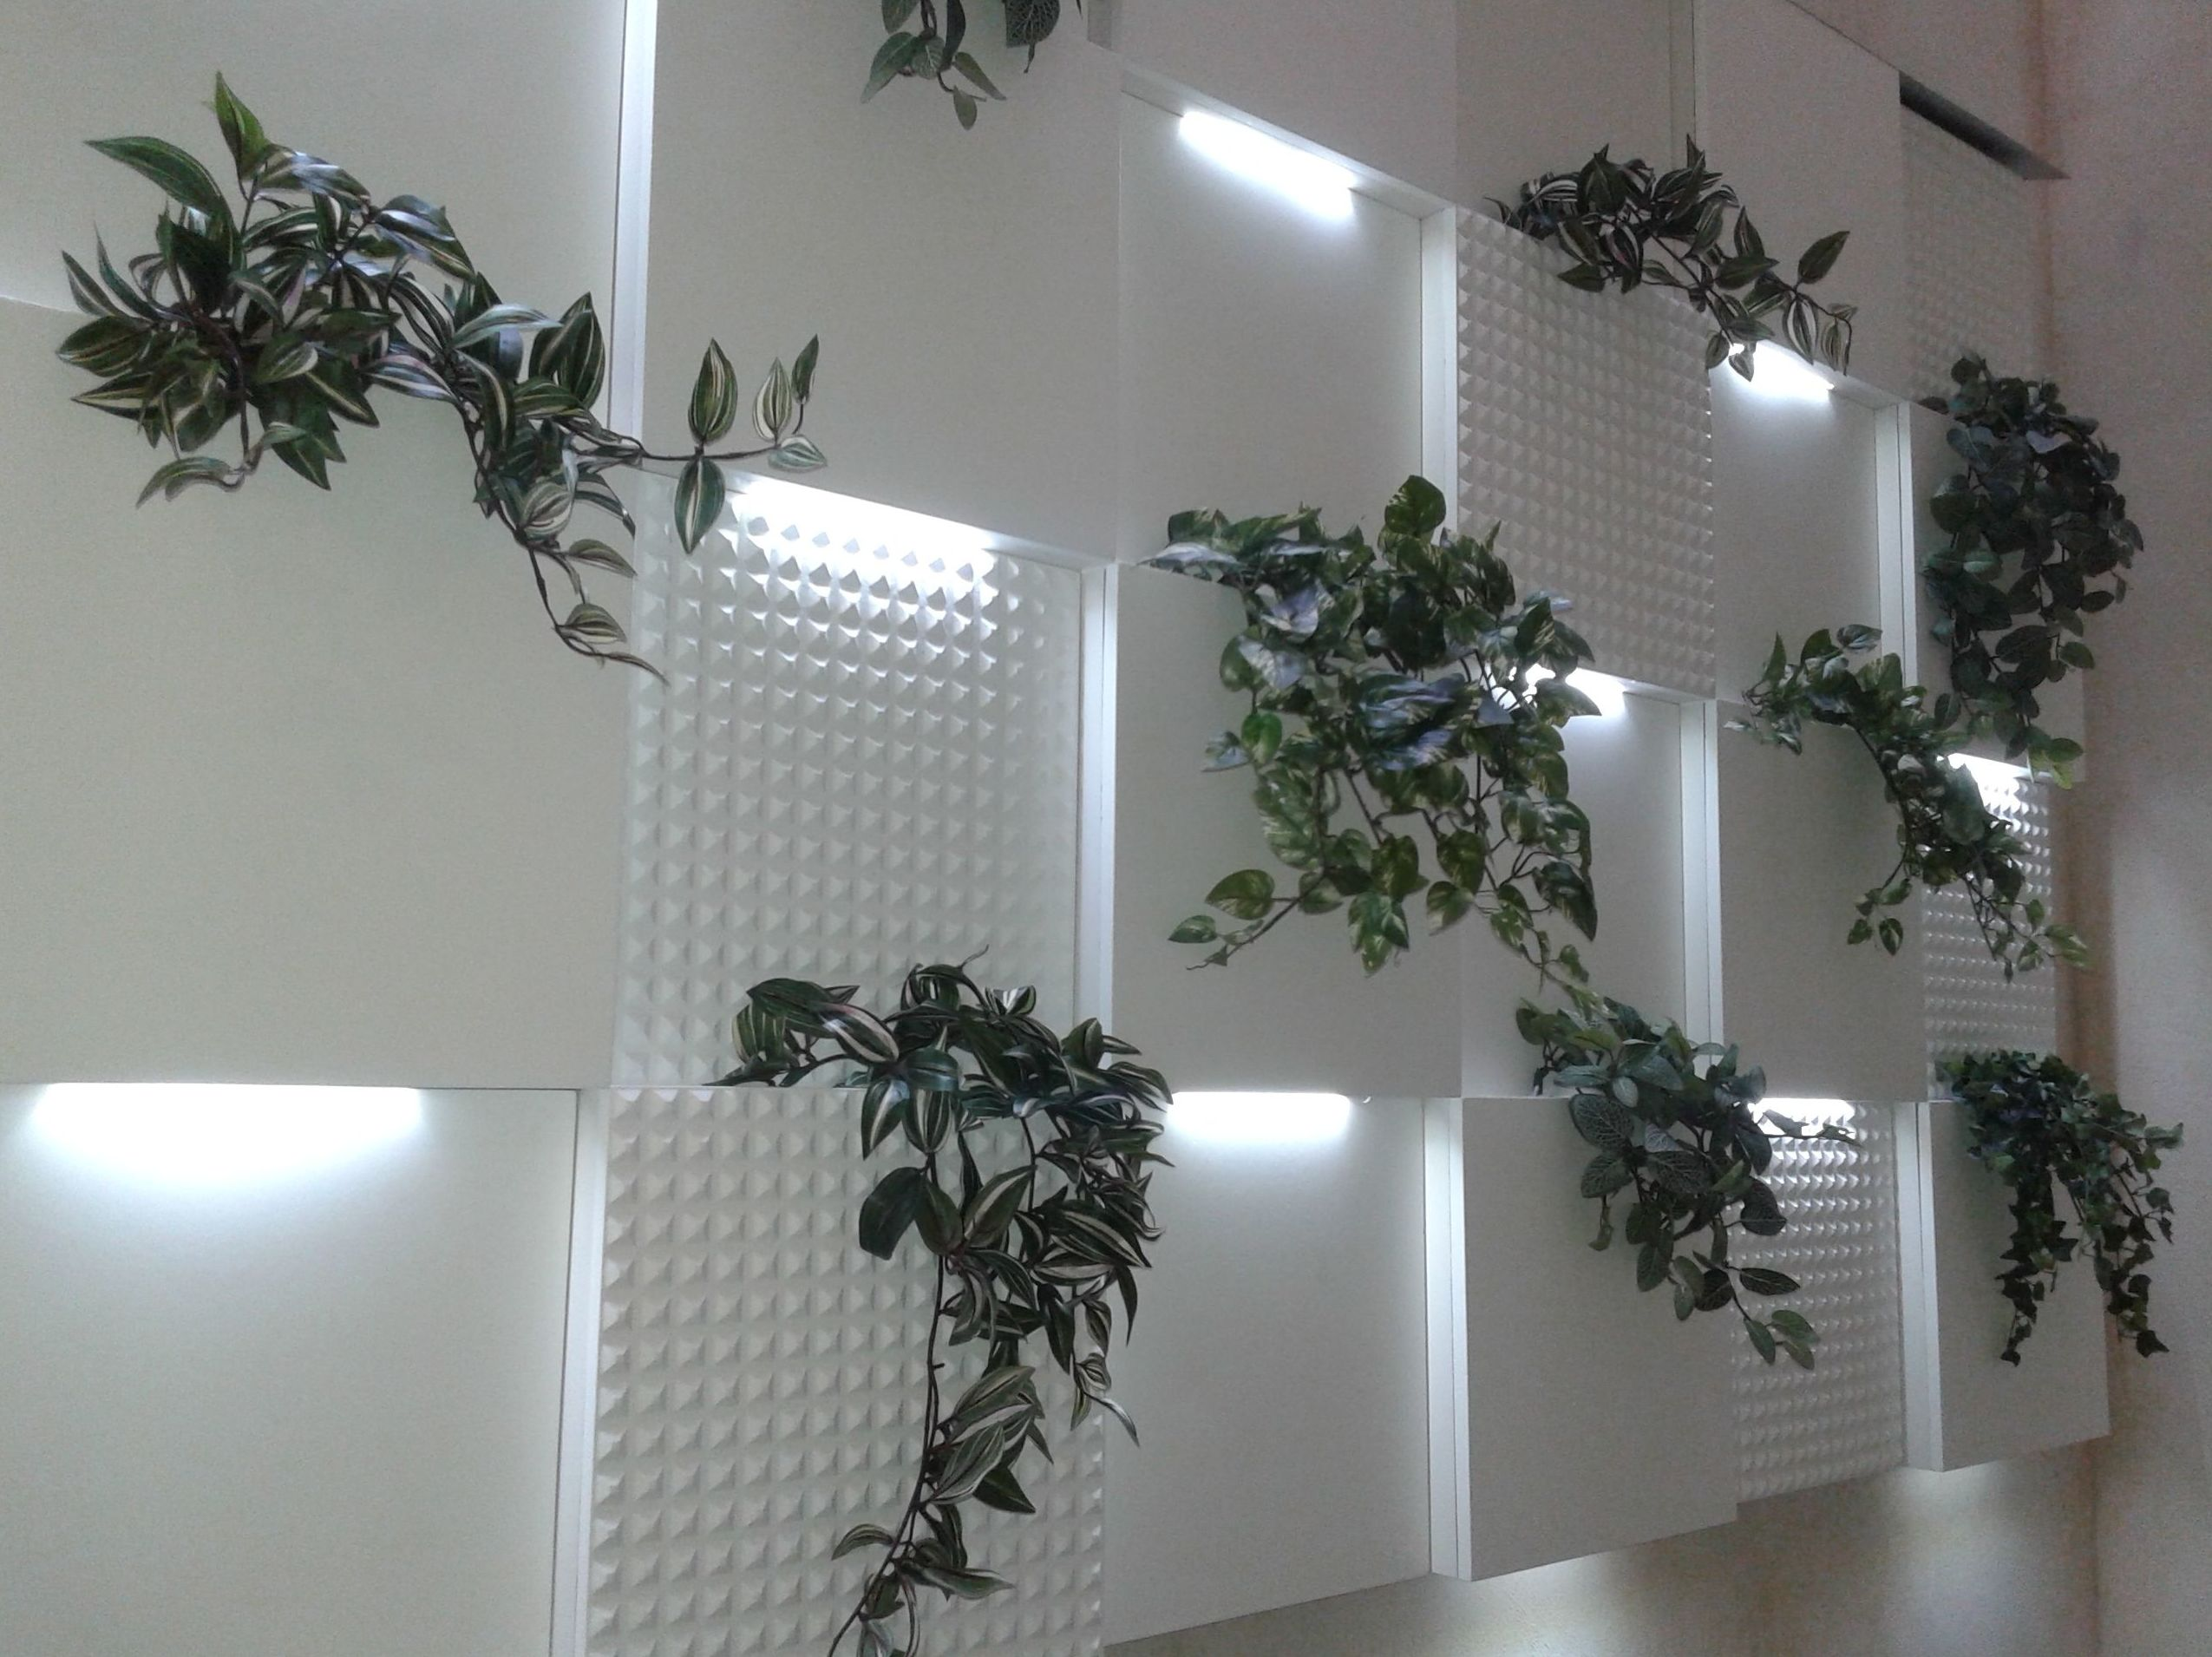 Javier Perez dentista - Pared vegetal